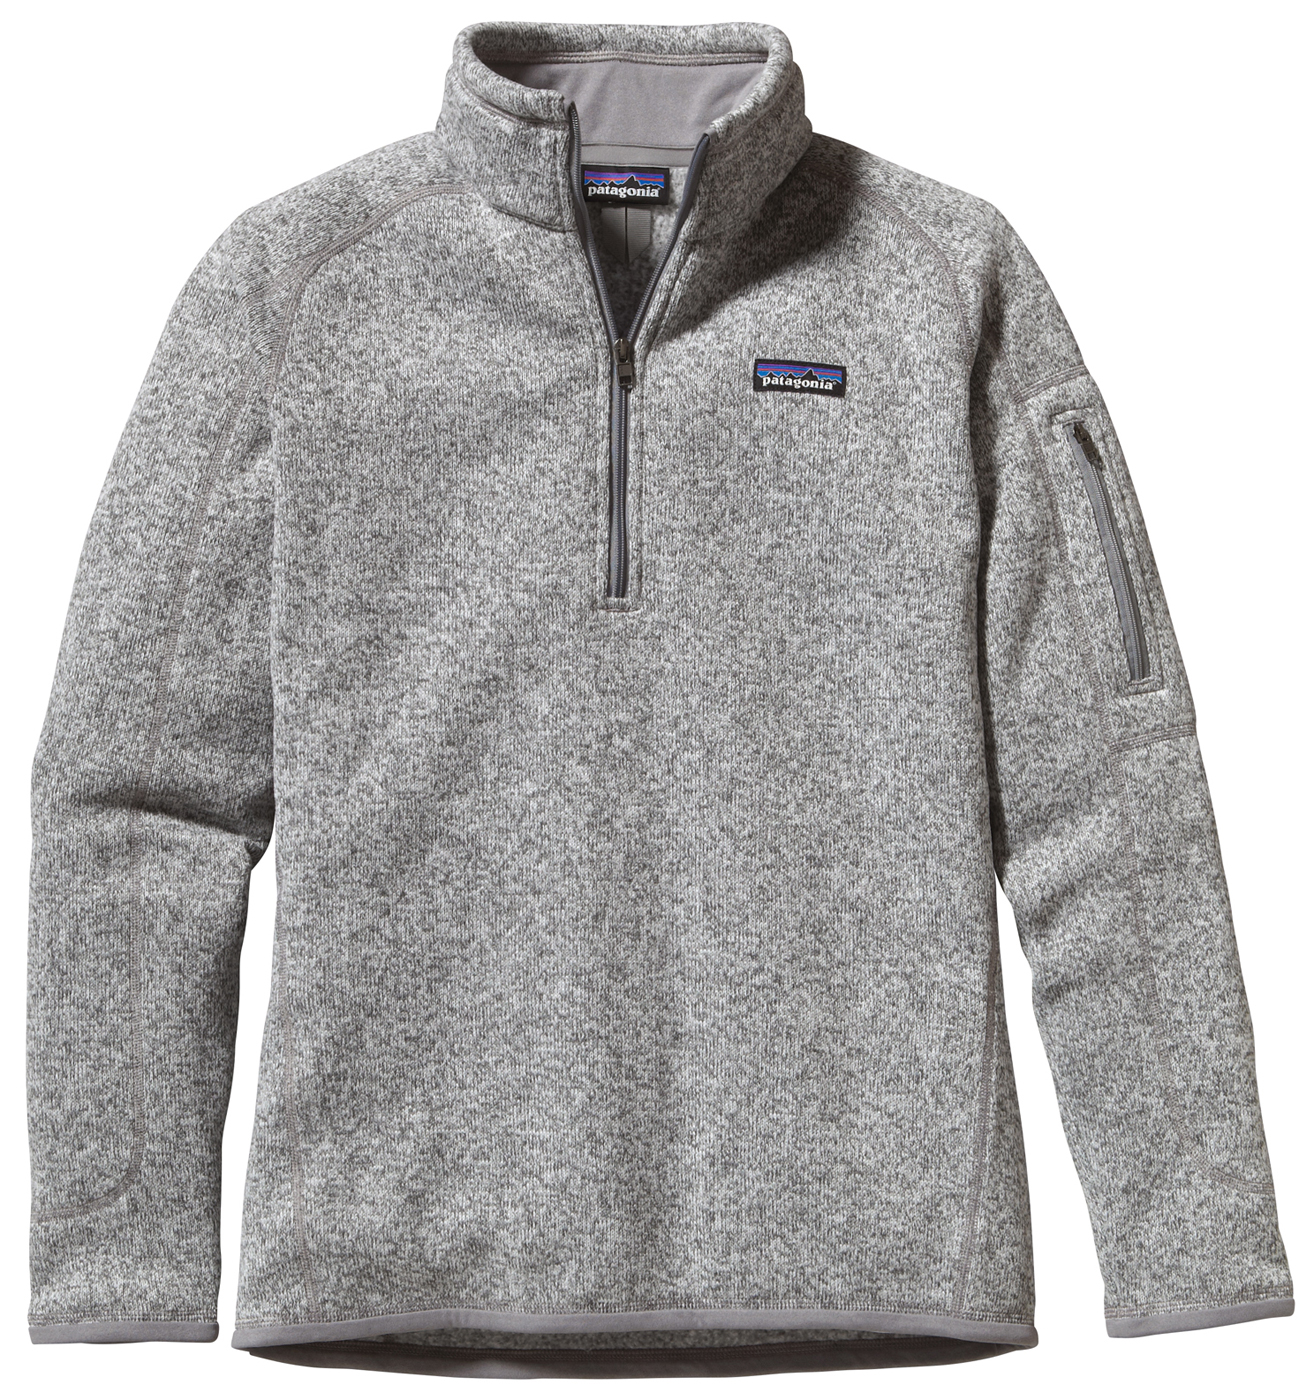 Patagonia Women S Better Sweater 1 4 Zip Fleece Jacket